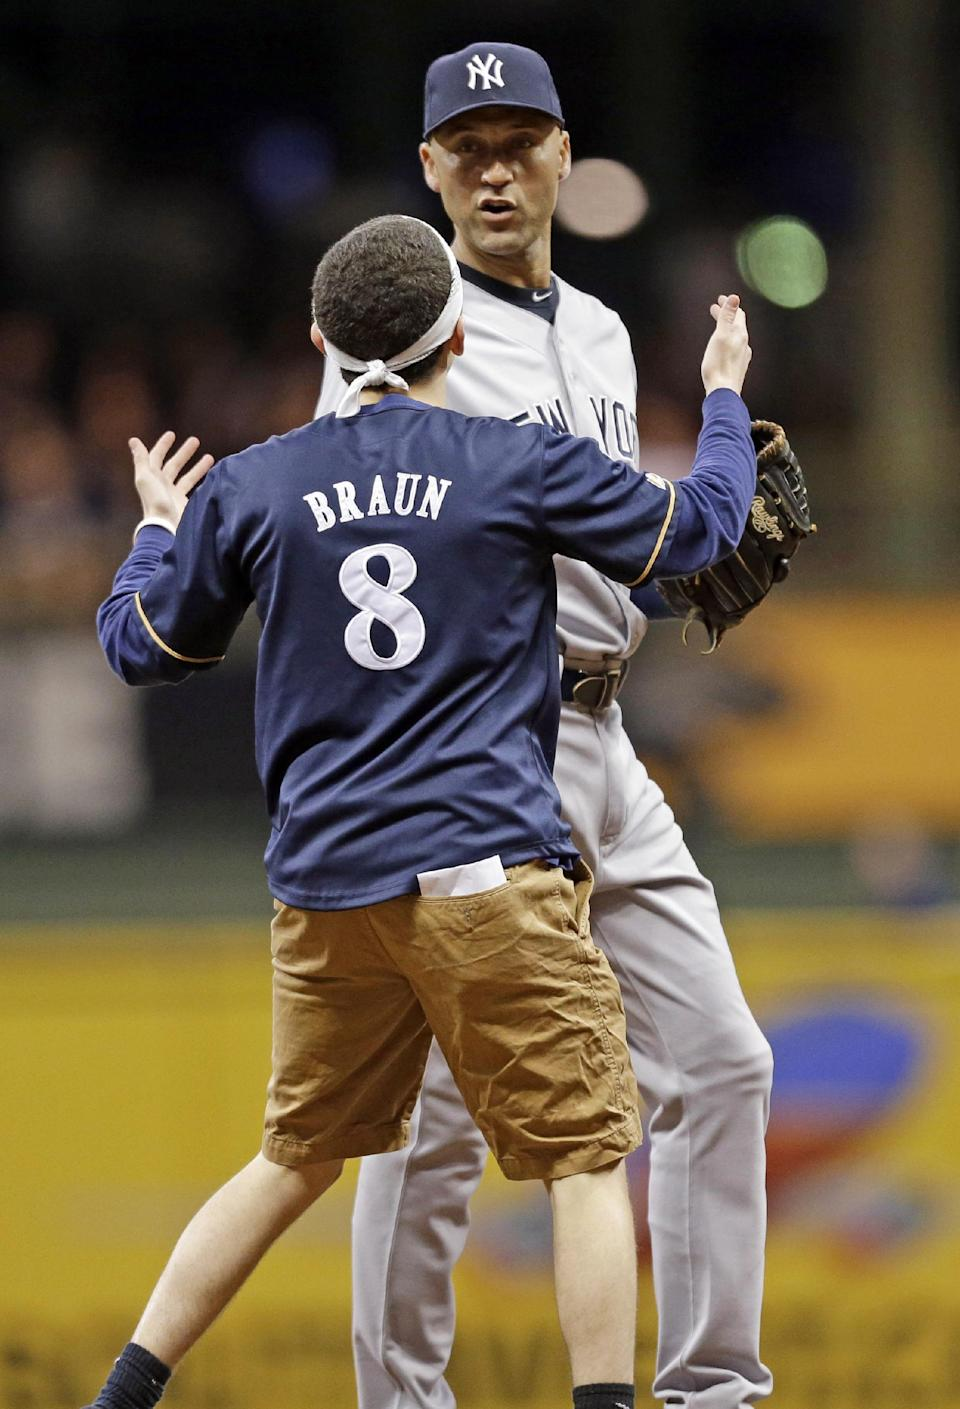 A fan runs out on the field to New York Yankees' Derek Jeter in the sixth inning of a baseball game against the Milwaukee Brewers, Friday, May 9, 2014, in Milwaukee. (AP Photo/Jeffrey Phelps)